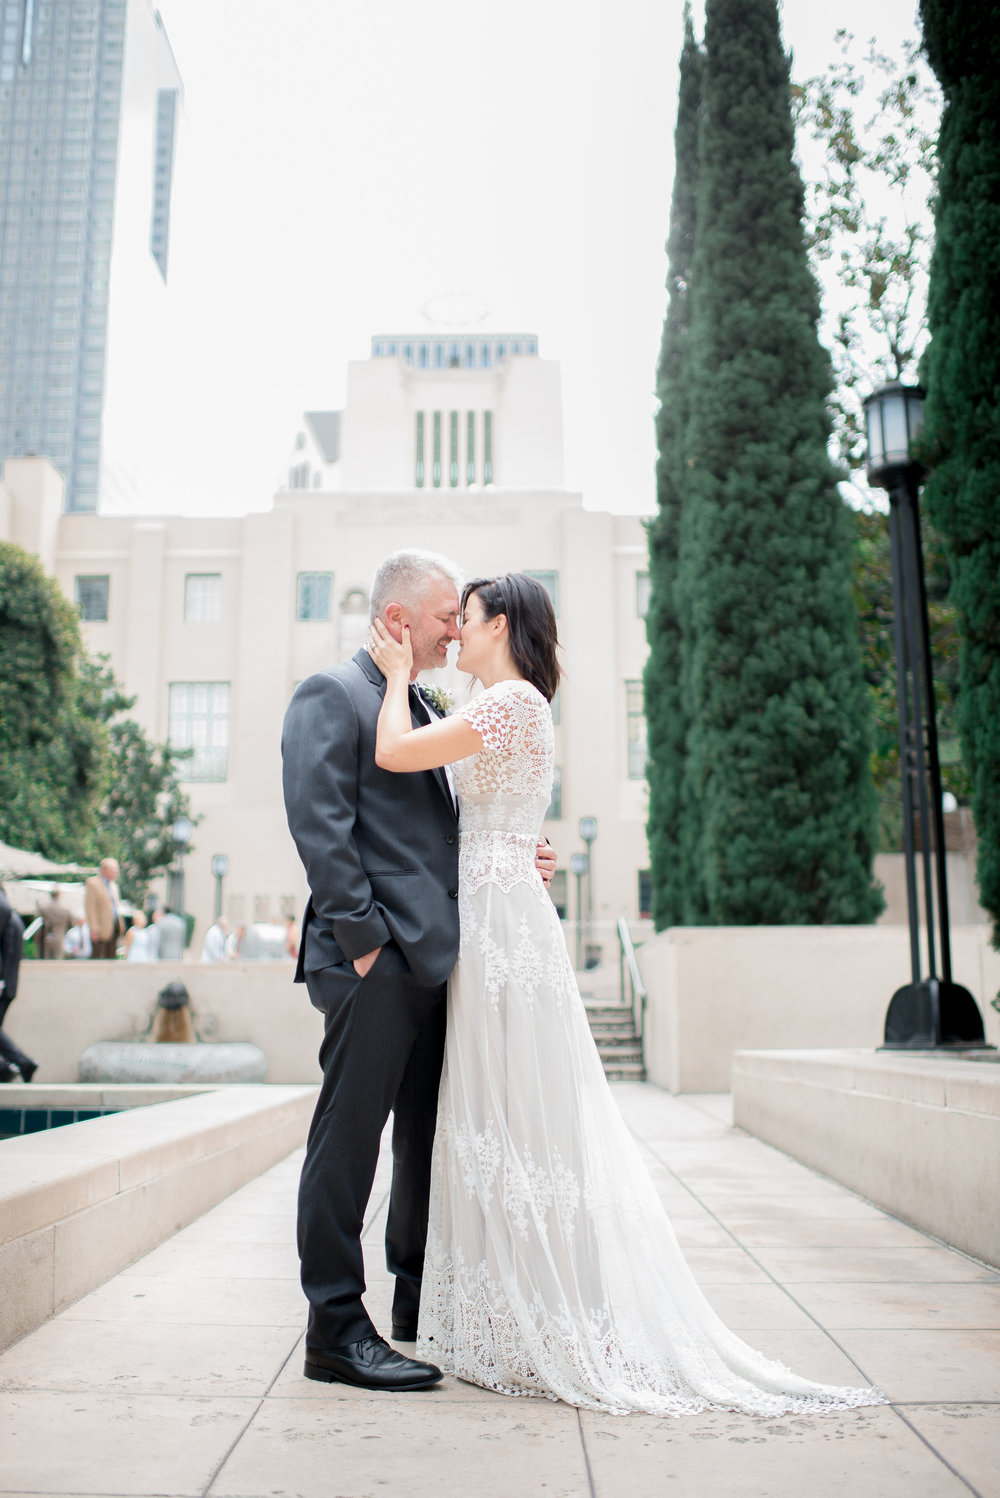 socal-wedding-consultant-best-wedding-planners-in-southern-california-cafe-pinot-wedding-planner123.jpg